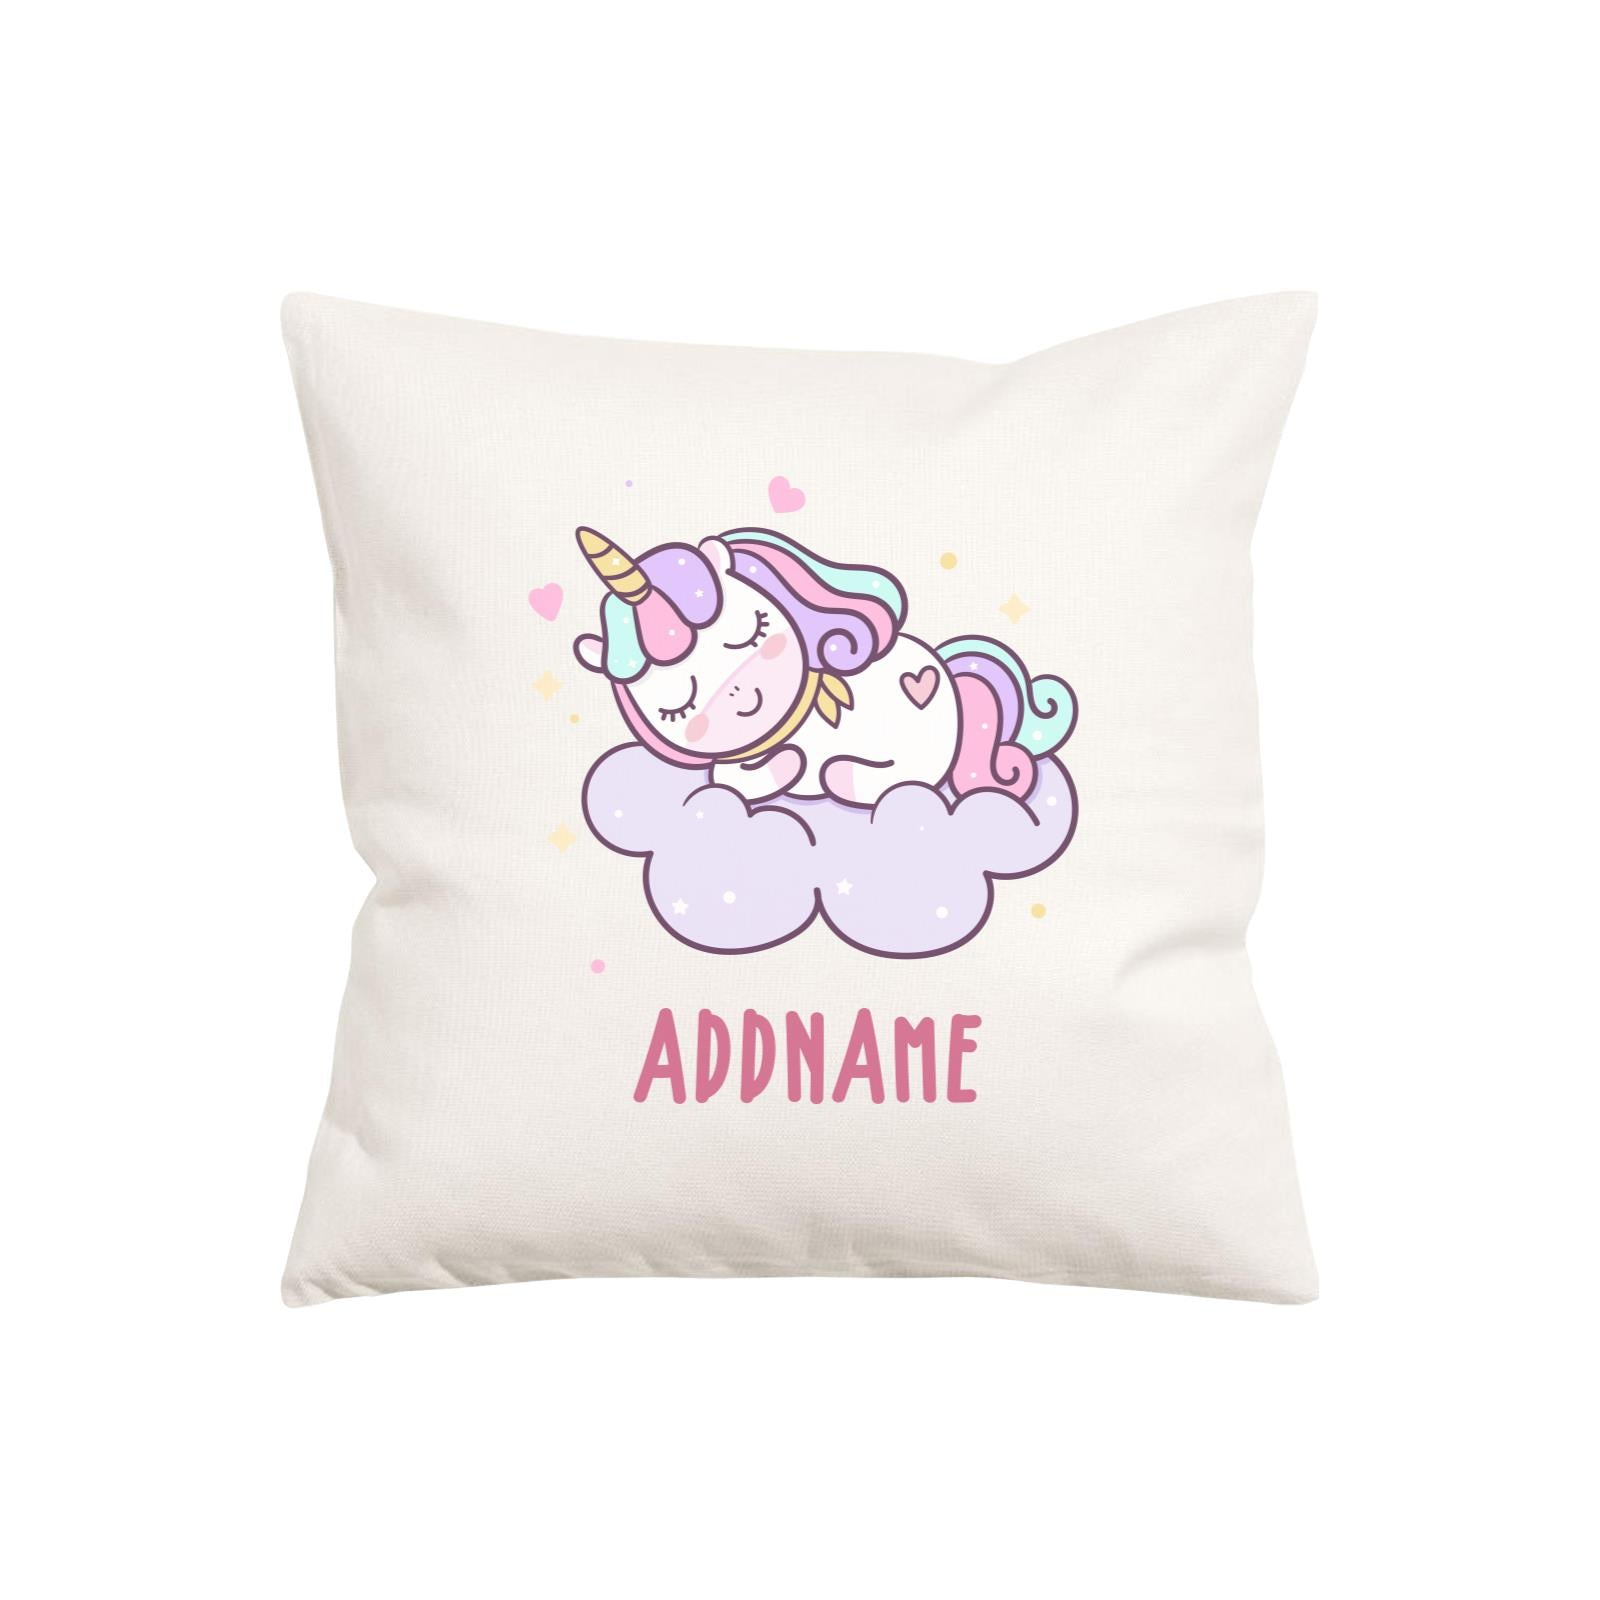 Unicorn And Princess Series Pastel Sleeping Unicorn On a Cloud Addname Pillow Cushion